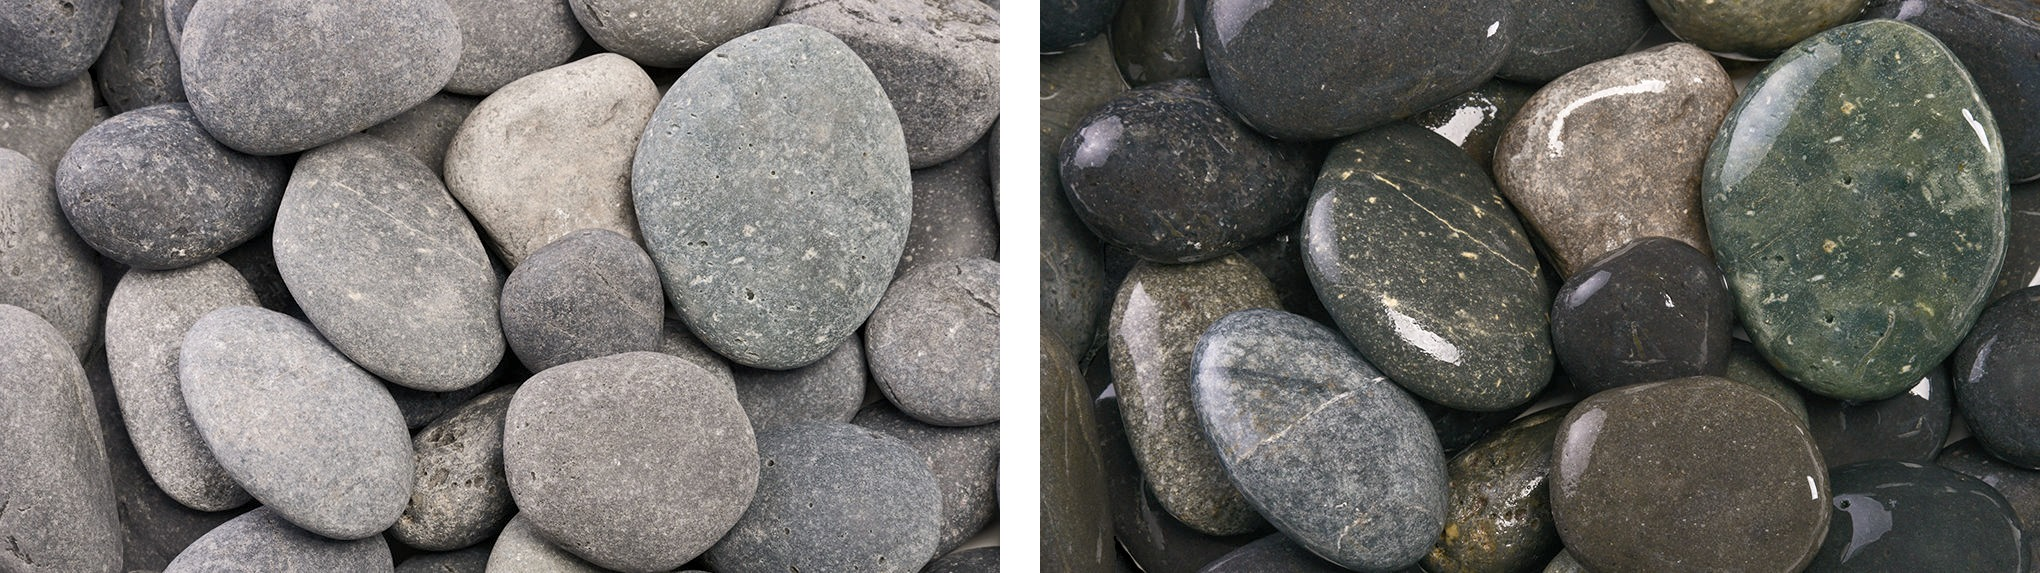 MEXICAN BEACH PEBBLES